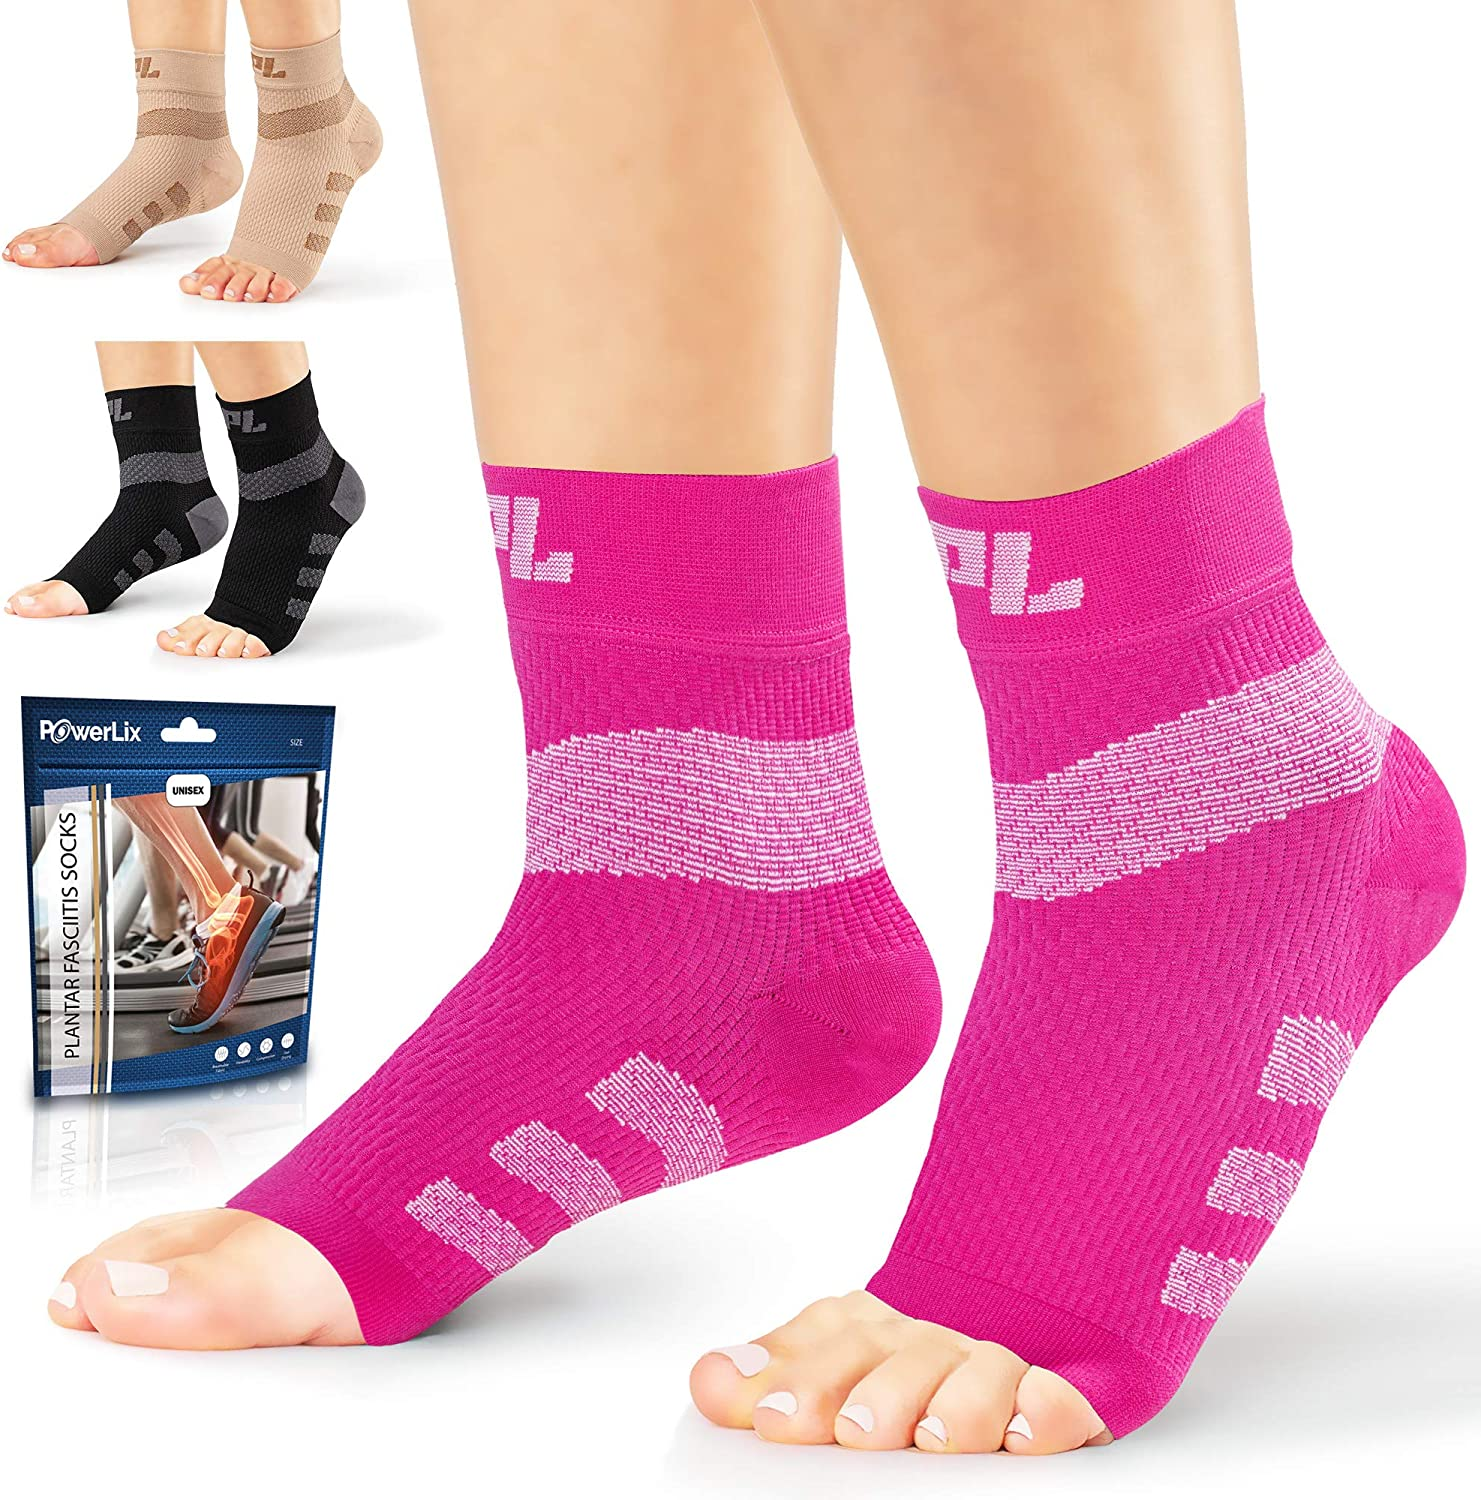 Powerlix Nano Socks for Neuropathy (Pair) for Women & Men, Ankle Brace Support, Plantar Fasciitis Socks, Toeless Compression Socks & Foot Sleeve for Arch & Heel Pain Relief - Treatment & Everyday Use : Health & Household